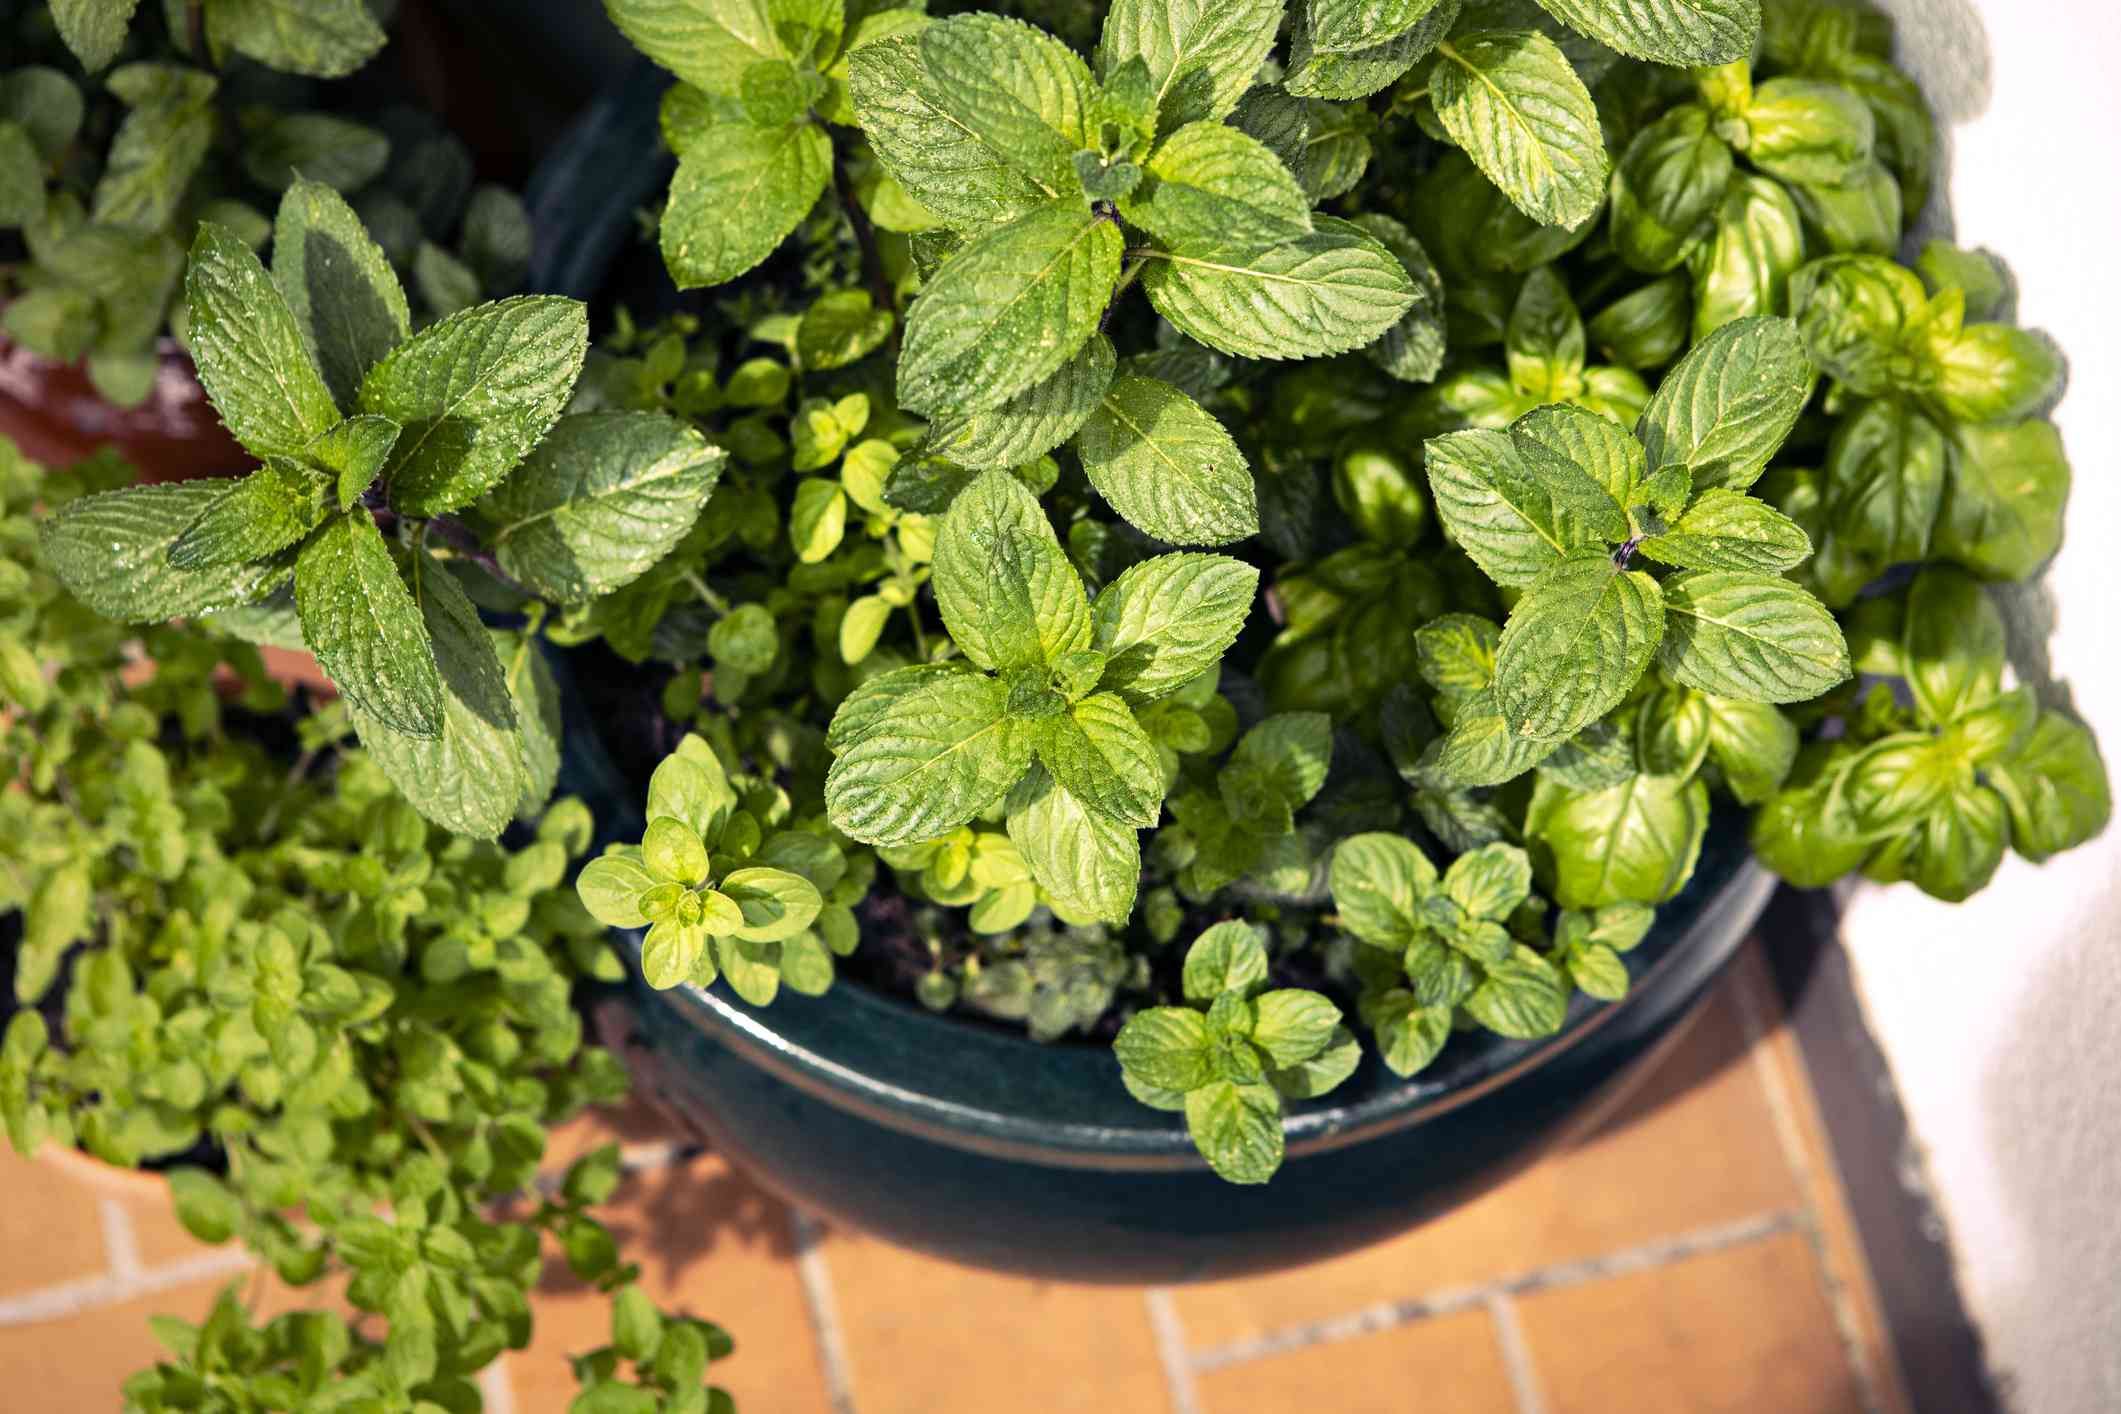 Mint growing with other herbs in a balcony garden pot.